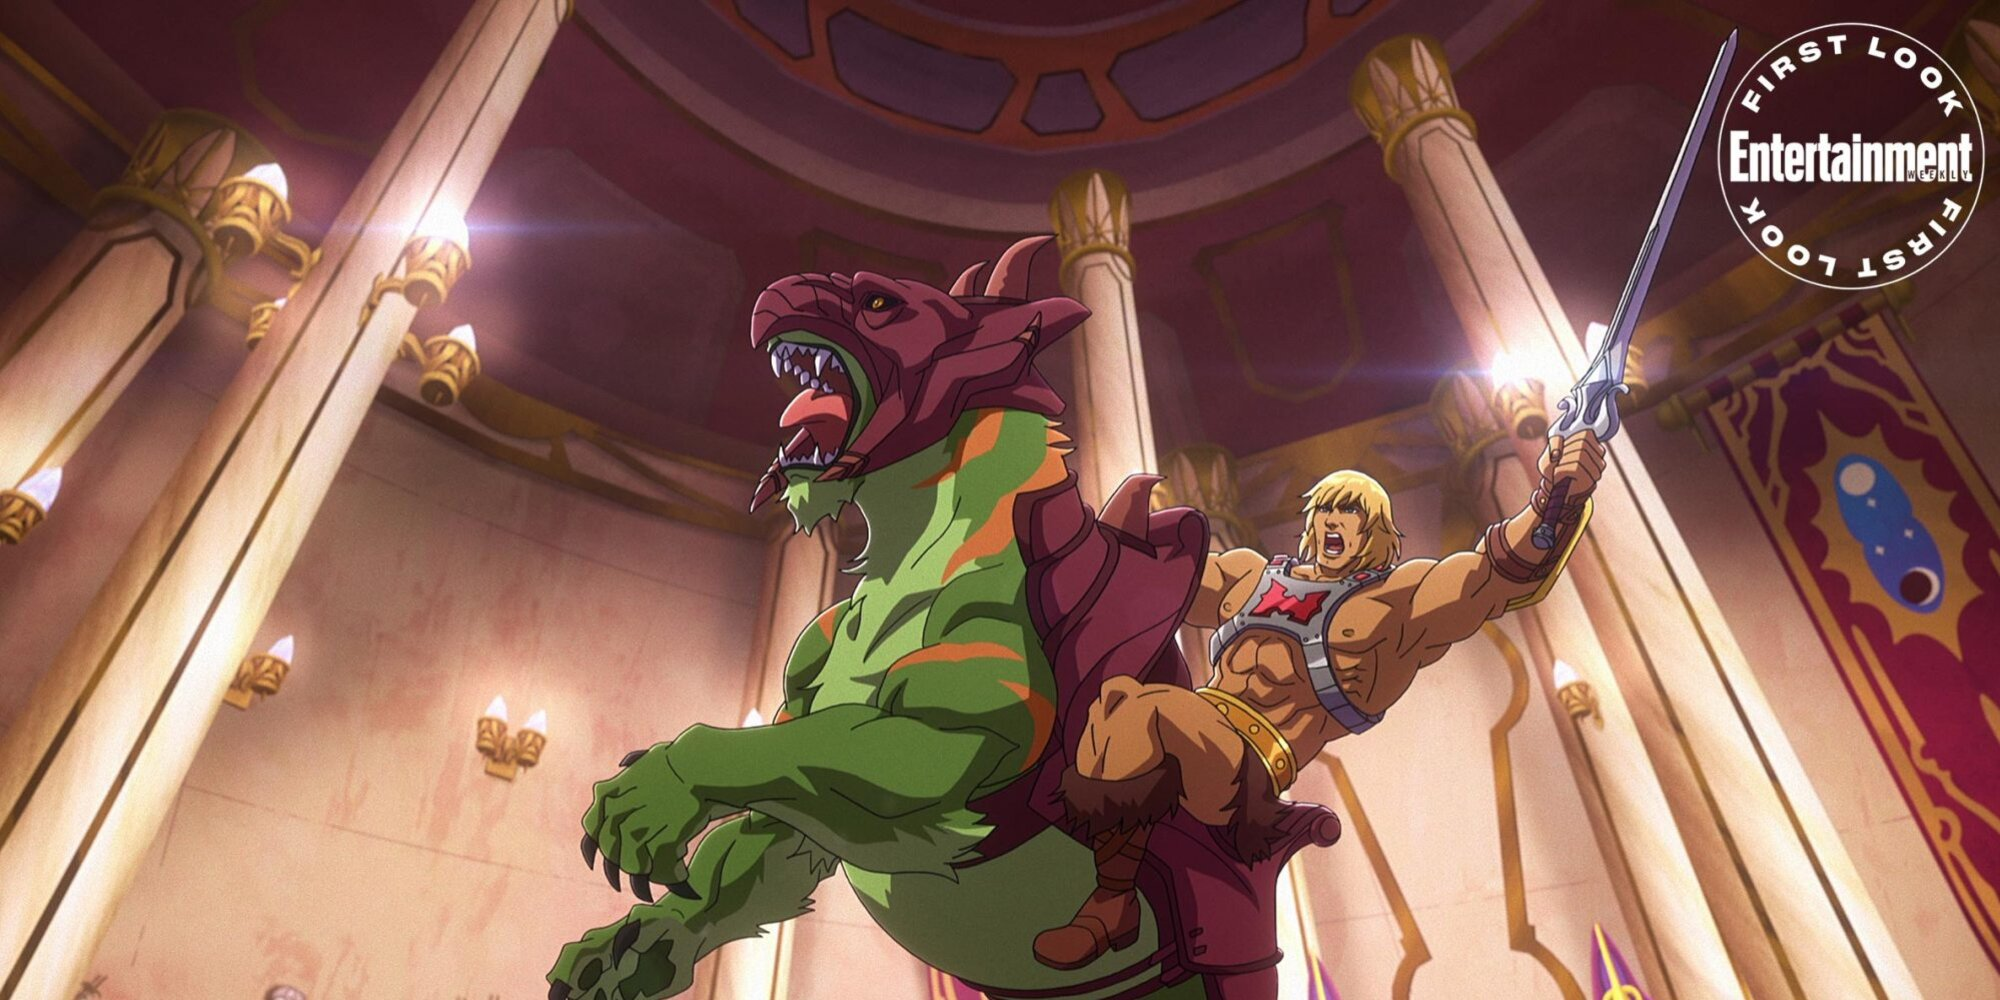 'Masters of the Universe: Revelation' unleashes the powah! with first look at Kevin Smith's series